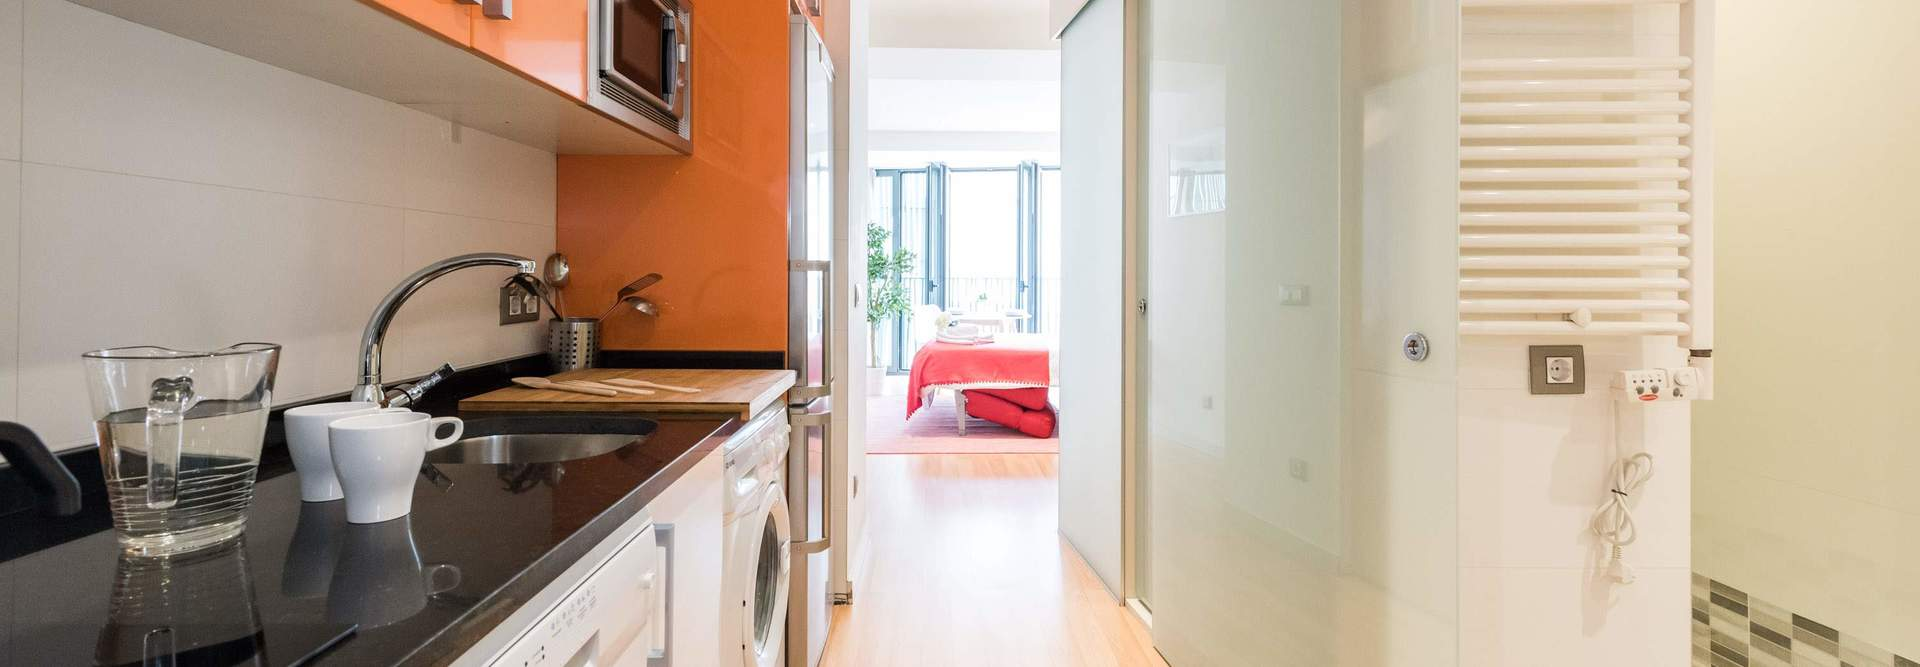 Home alquiler apartamento madrid centro mad4rent  35